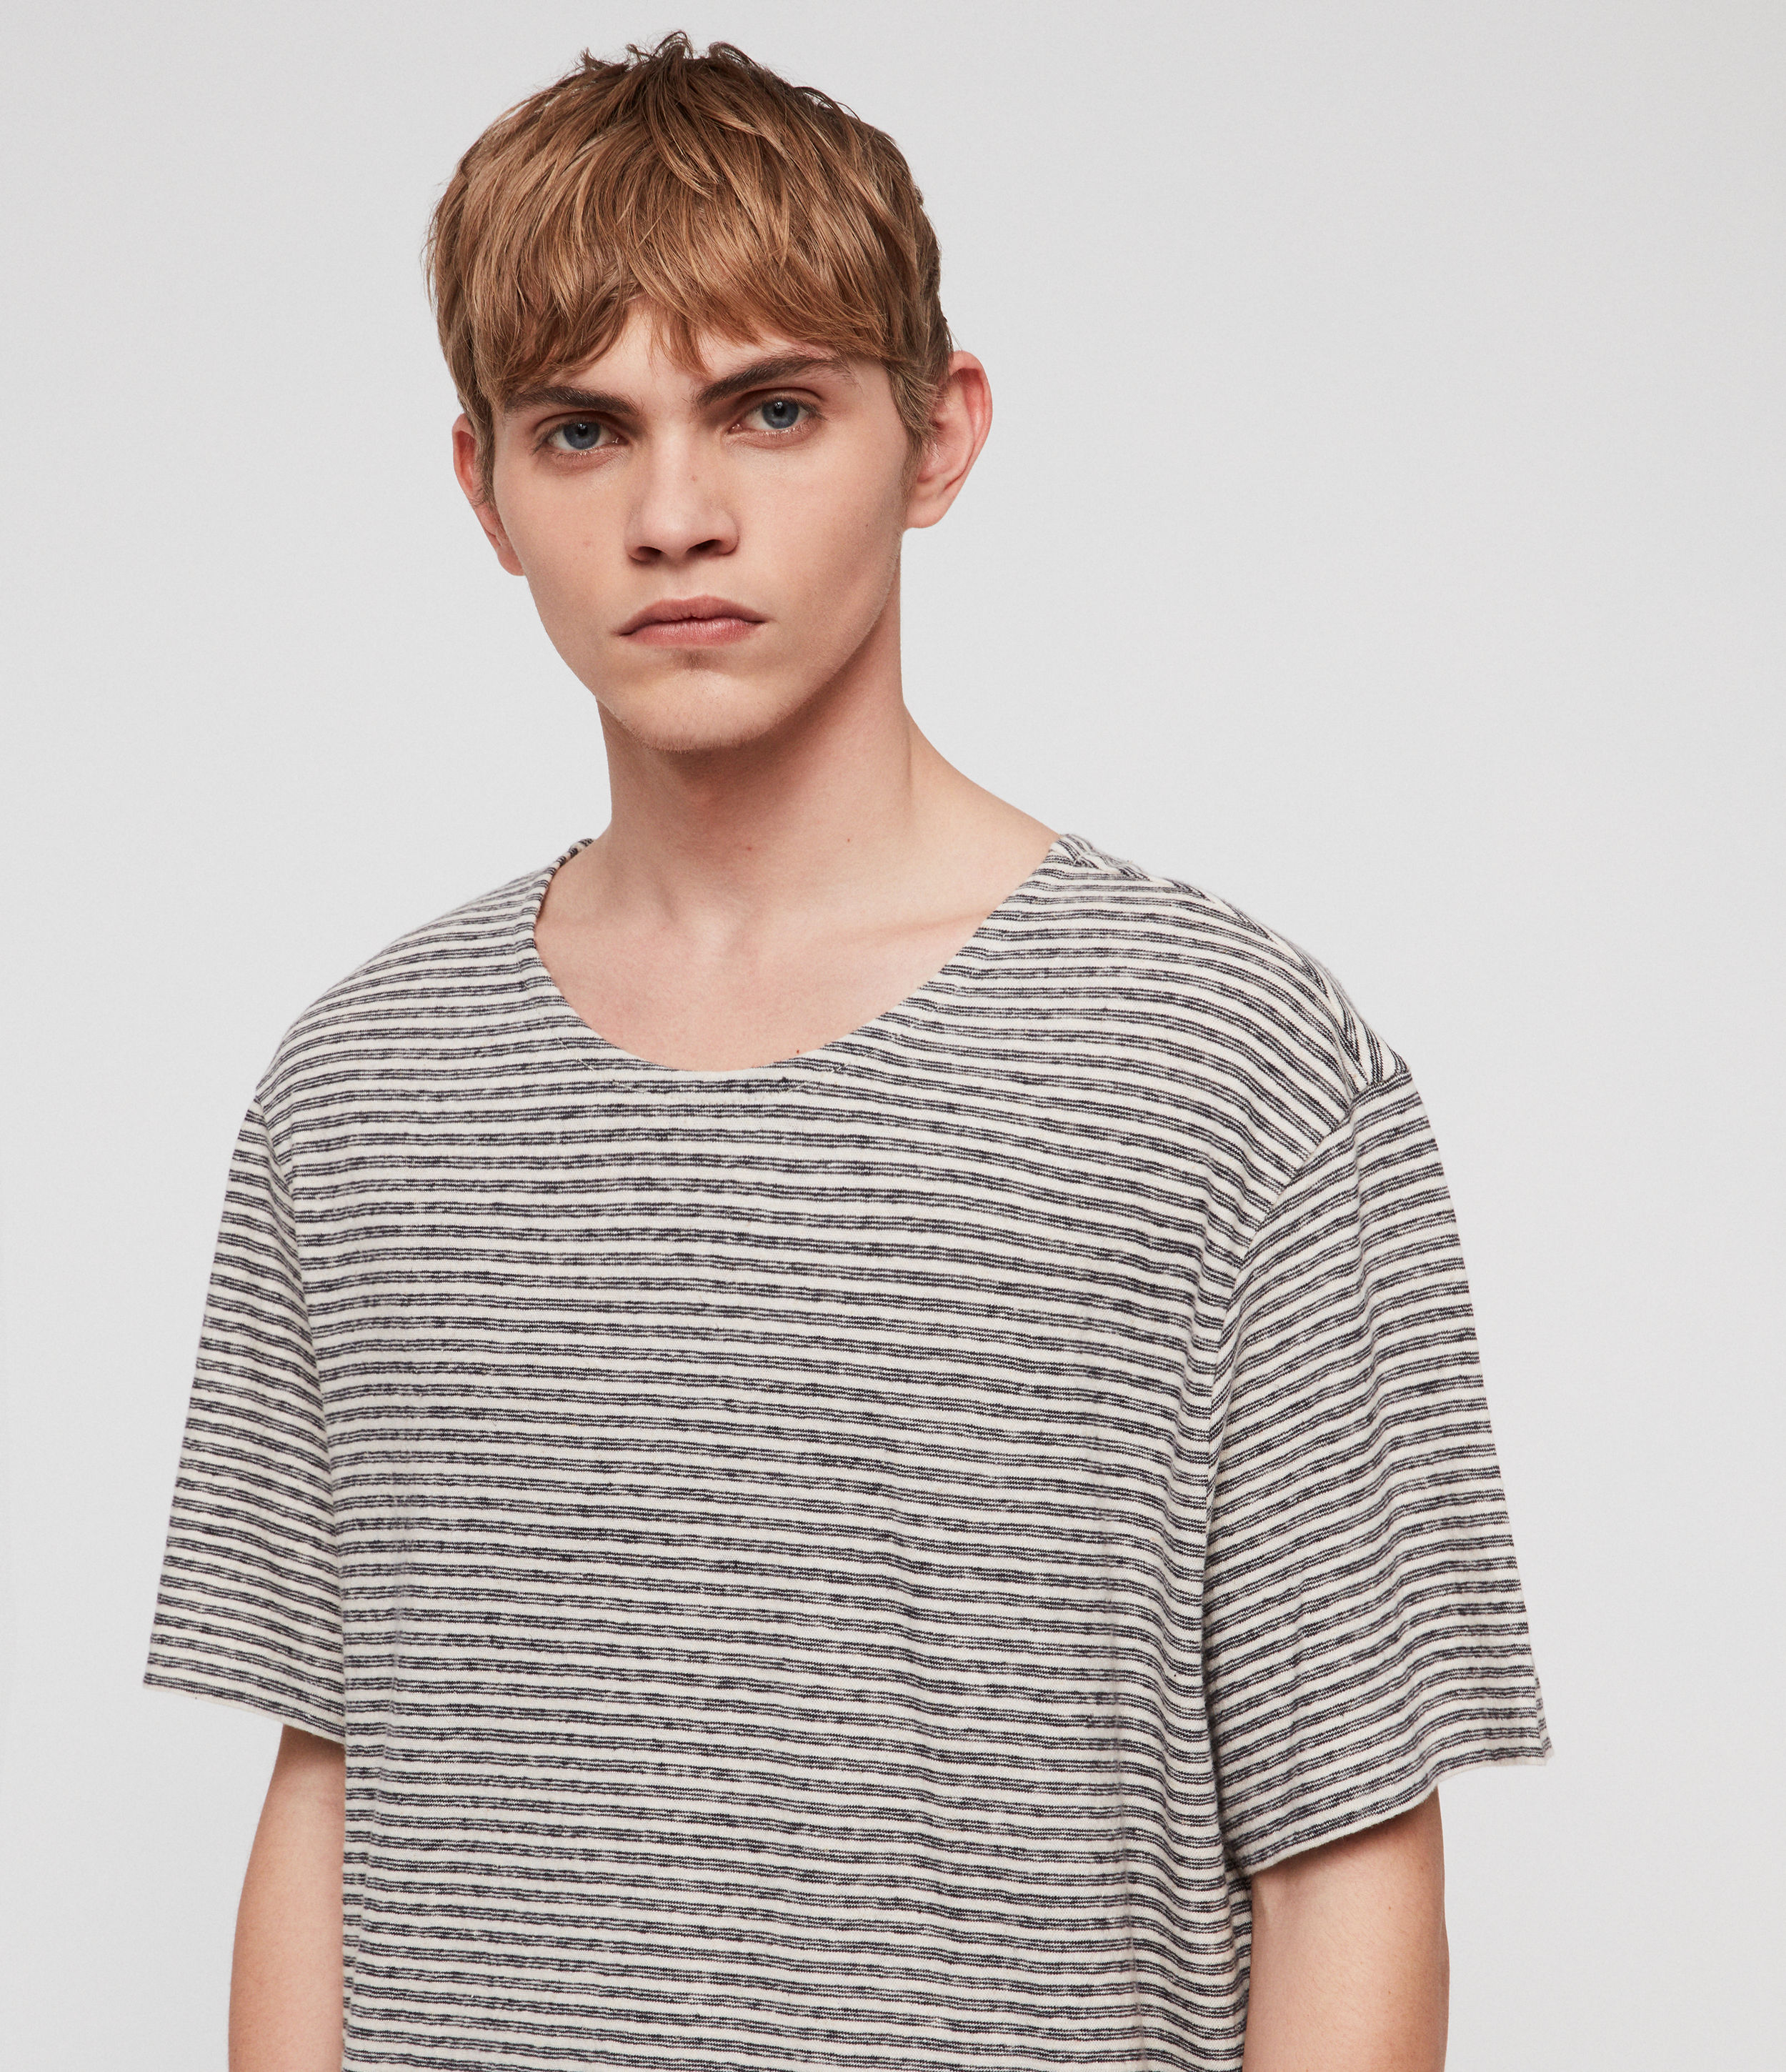 AllSaints Men's Cotton Stripe Relaxed Fit Sine Short Sleeve Crew T-Shirt, White and Navy, Size: XL